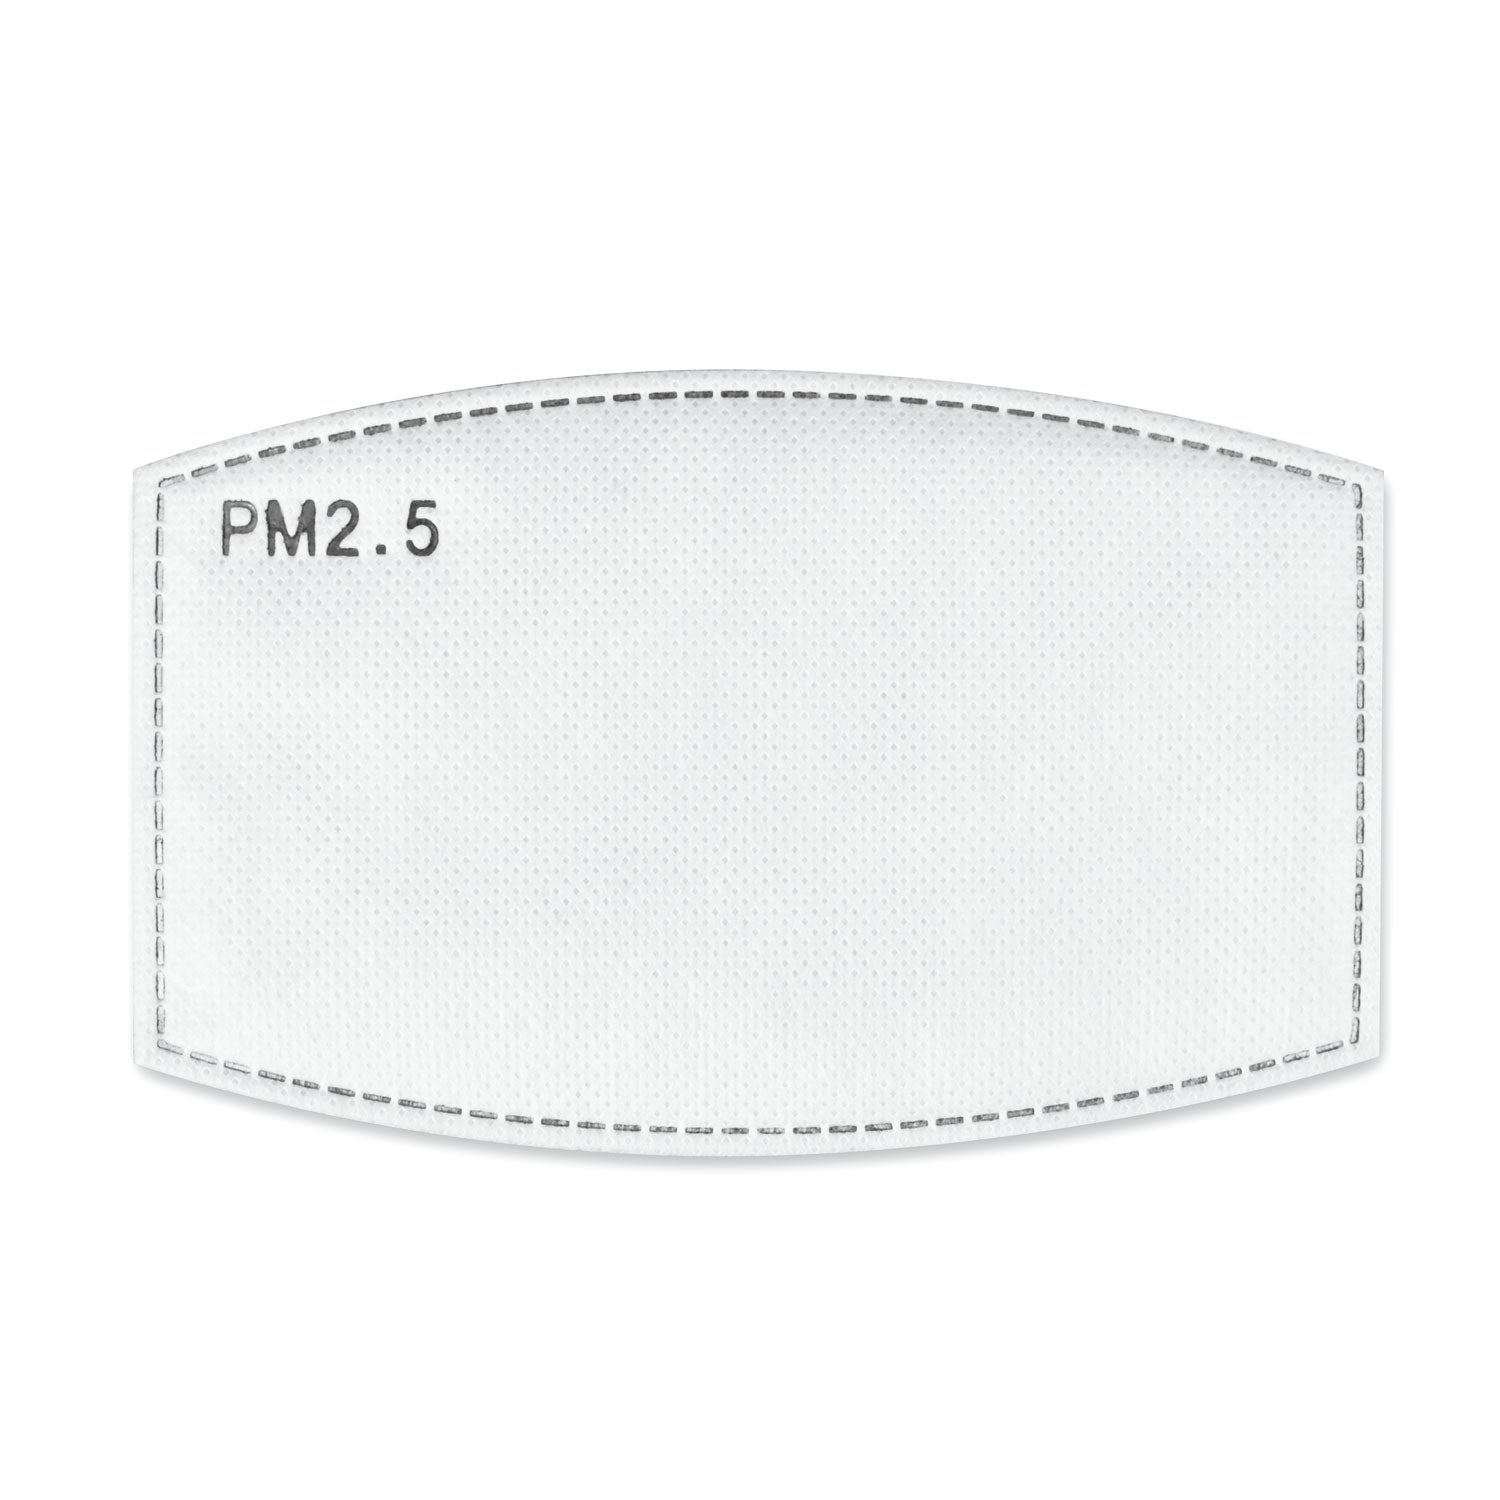 PM 2.5 Filter (10 Piece Pack)